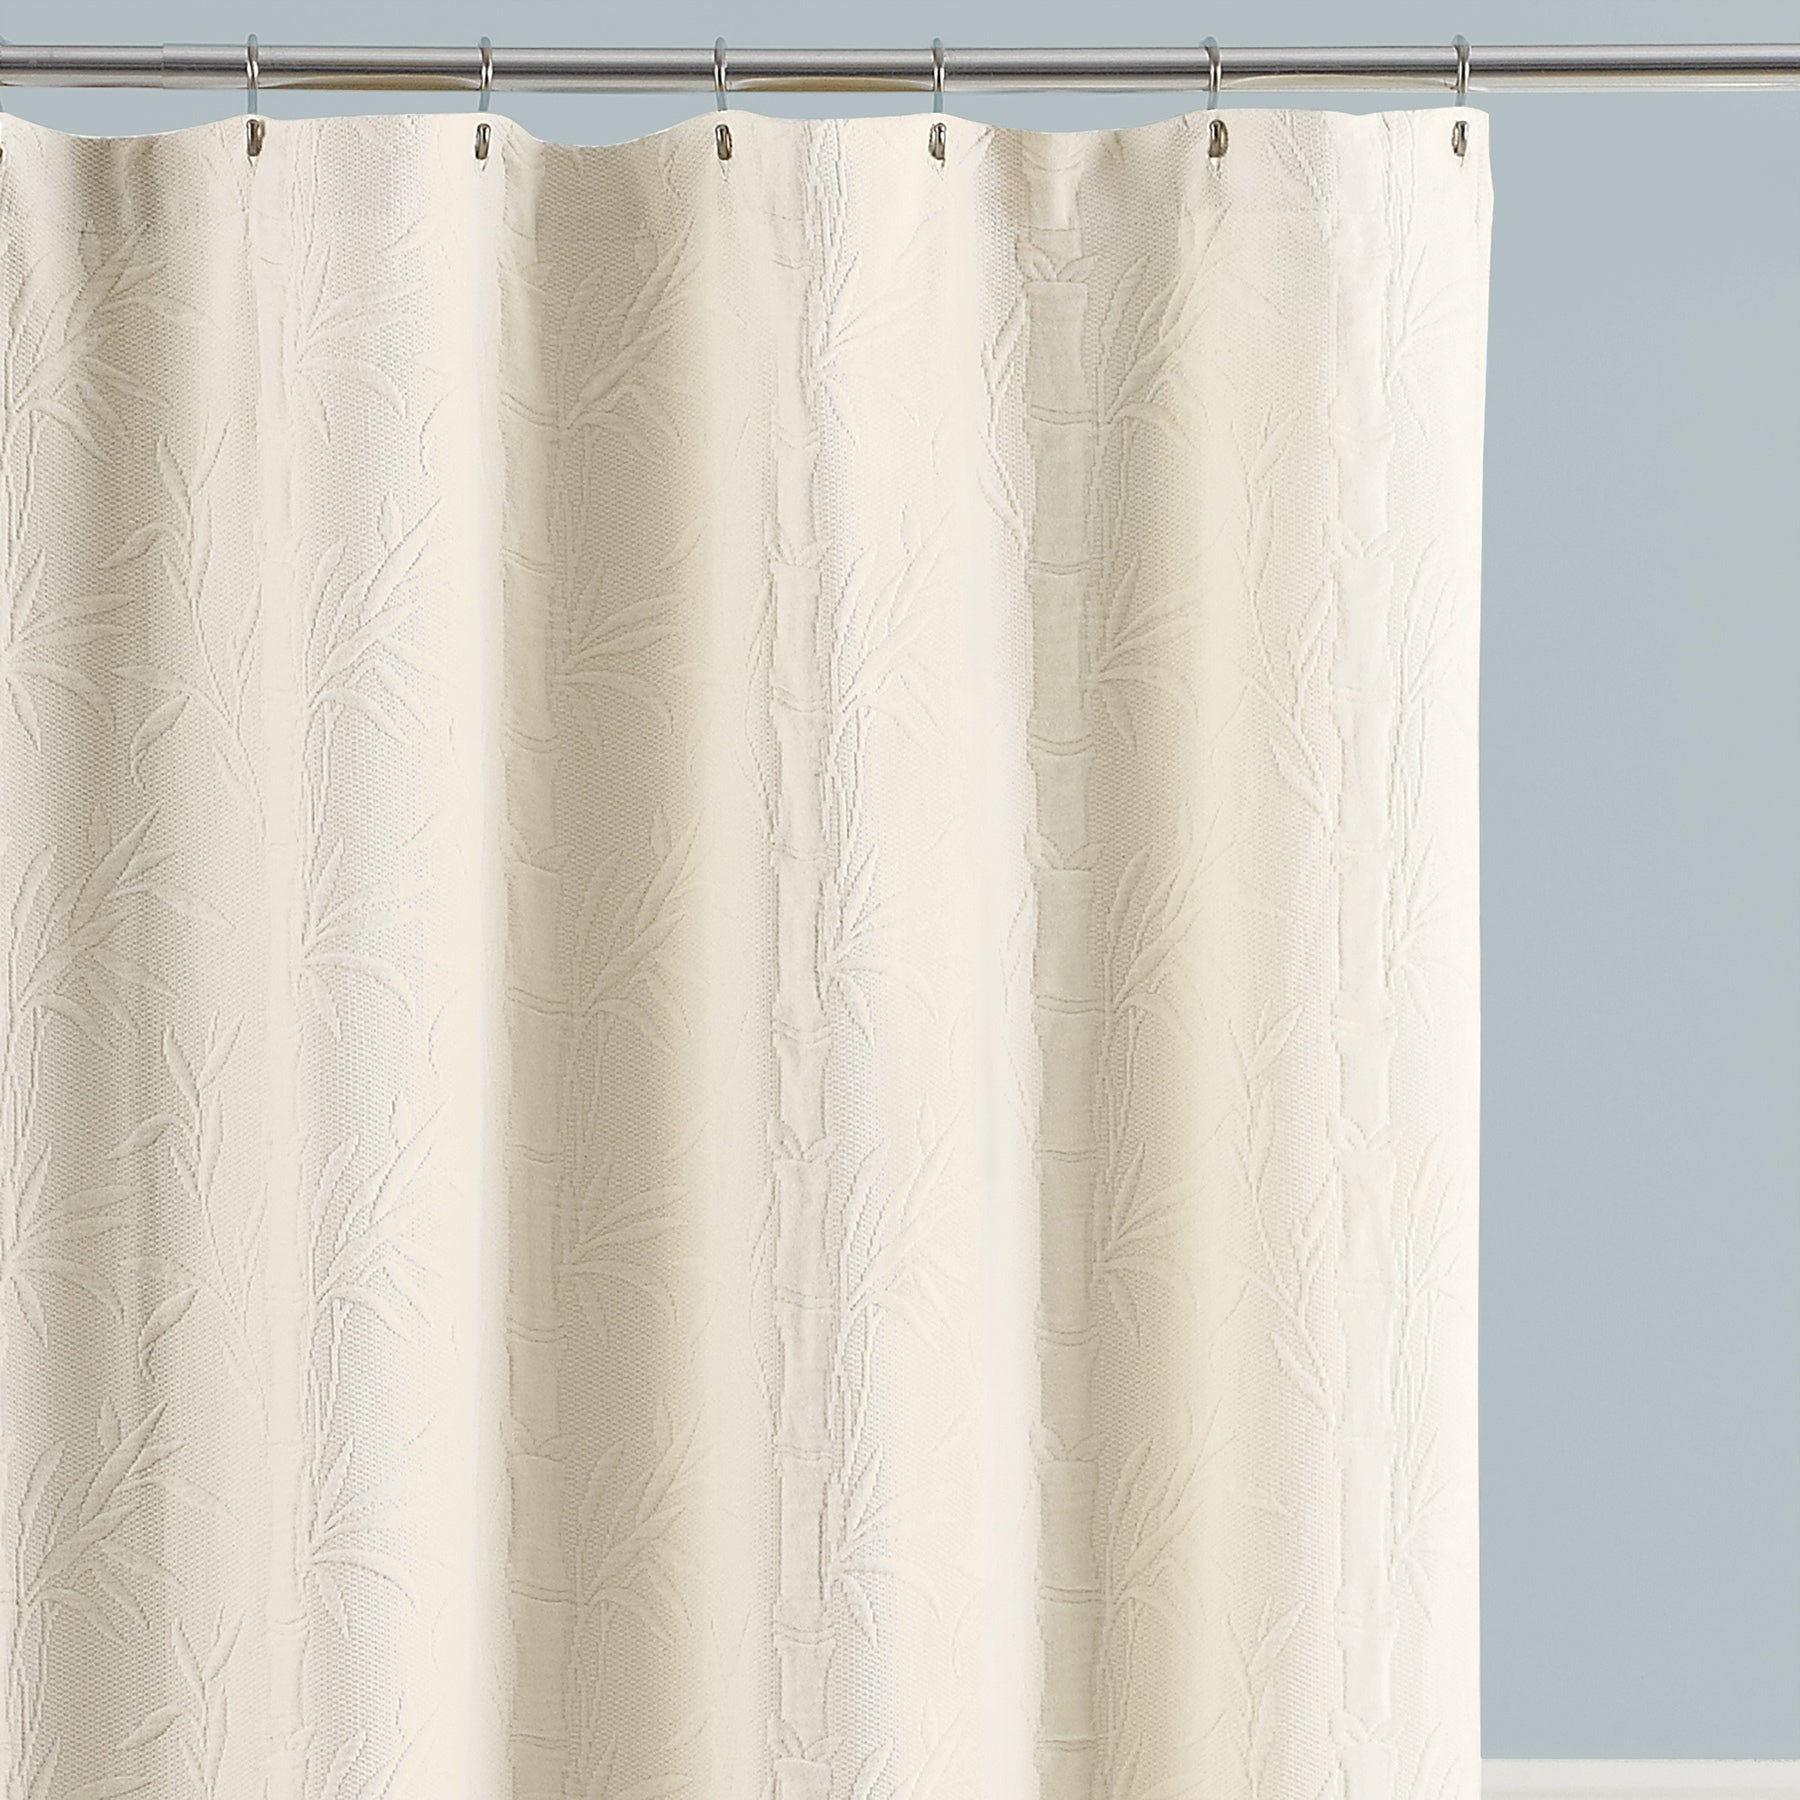 in designs emily long greige curtains shower natural by ellingwood fabric products extra curtain sizes